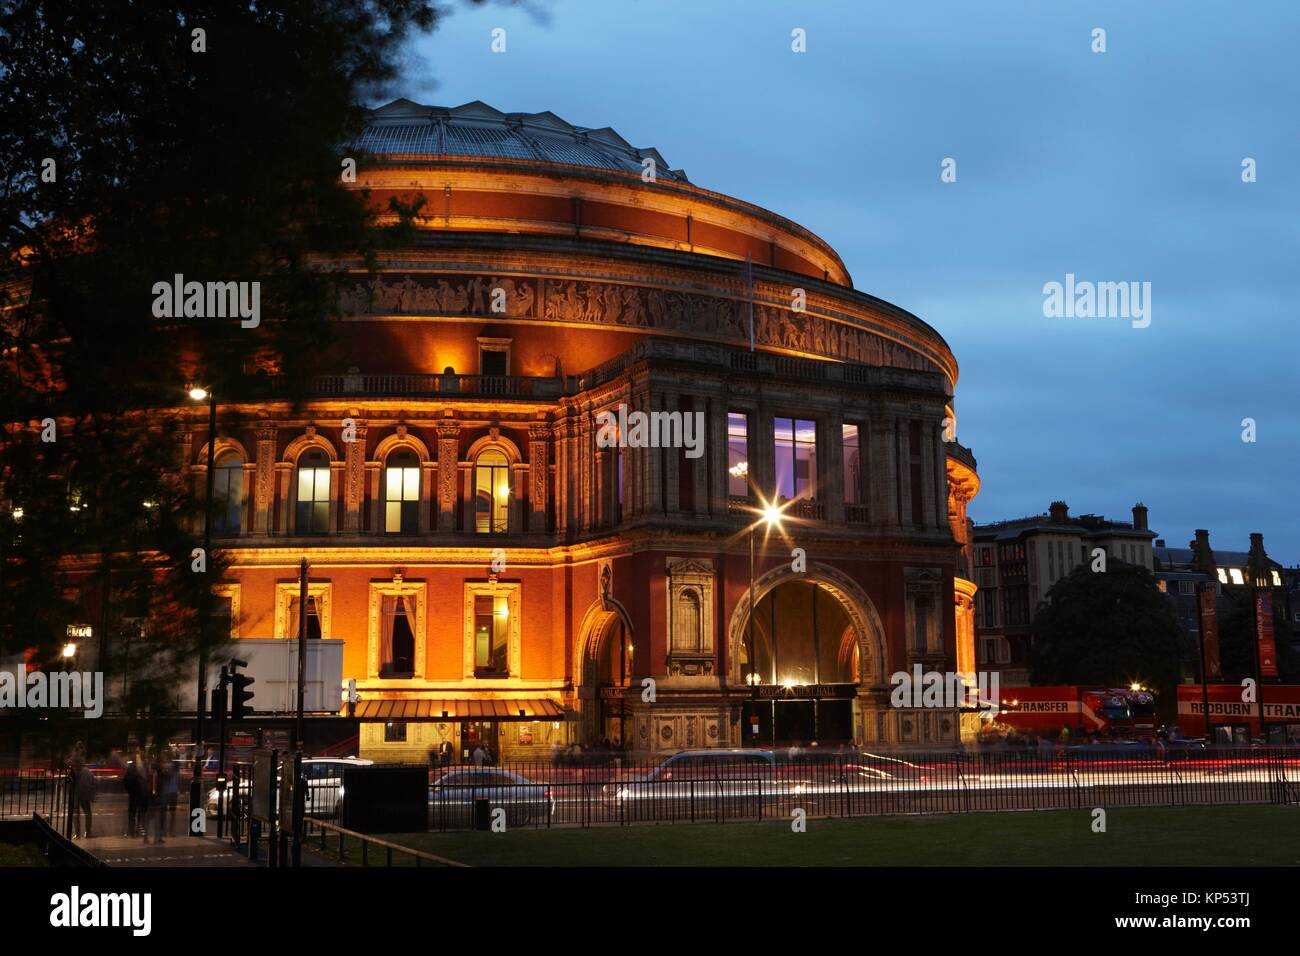 Die Royal Albert Hall, London; England; Gitter, Großbritannien; Kensington. Stockbild